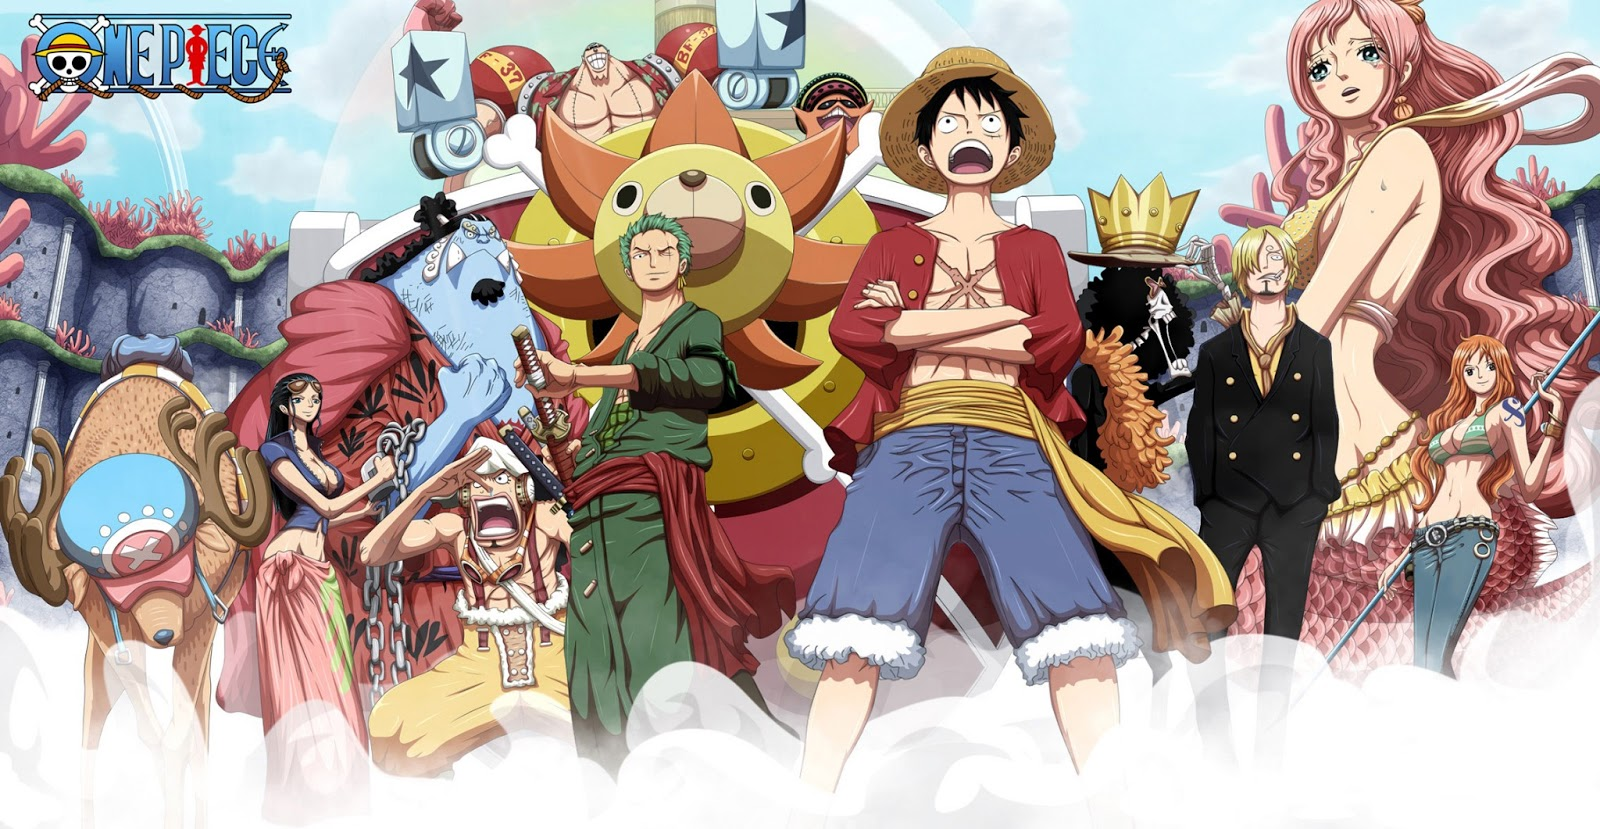 Straw hat pirate 15 wallpapers your daily anime - Anime pirate wallpaper ...